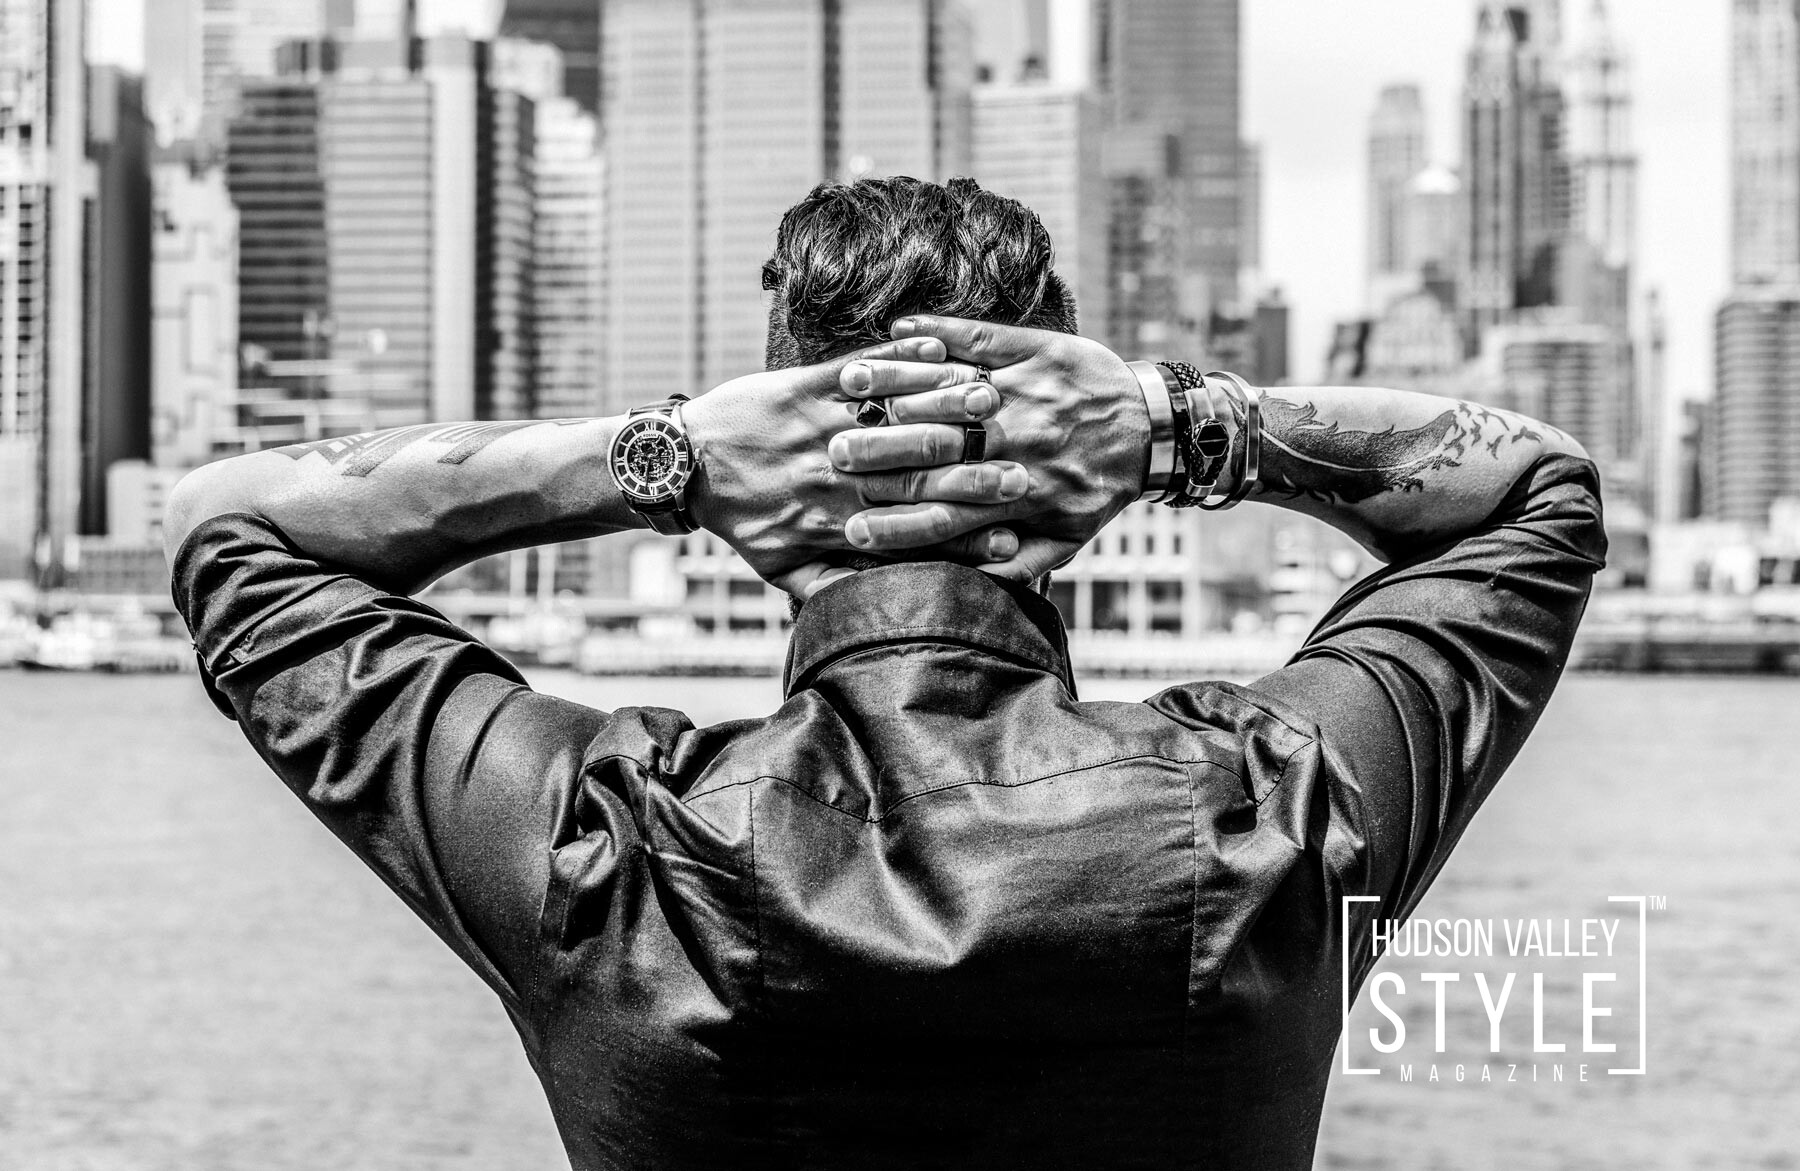 Trendy Mens Fashion Accessories This Holiday Season 2021 - Presented by HARD NEW YORK - Authentic Mens Fashion Accessories - Photography by Duncan Avenue Studios